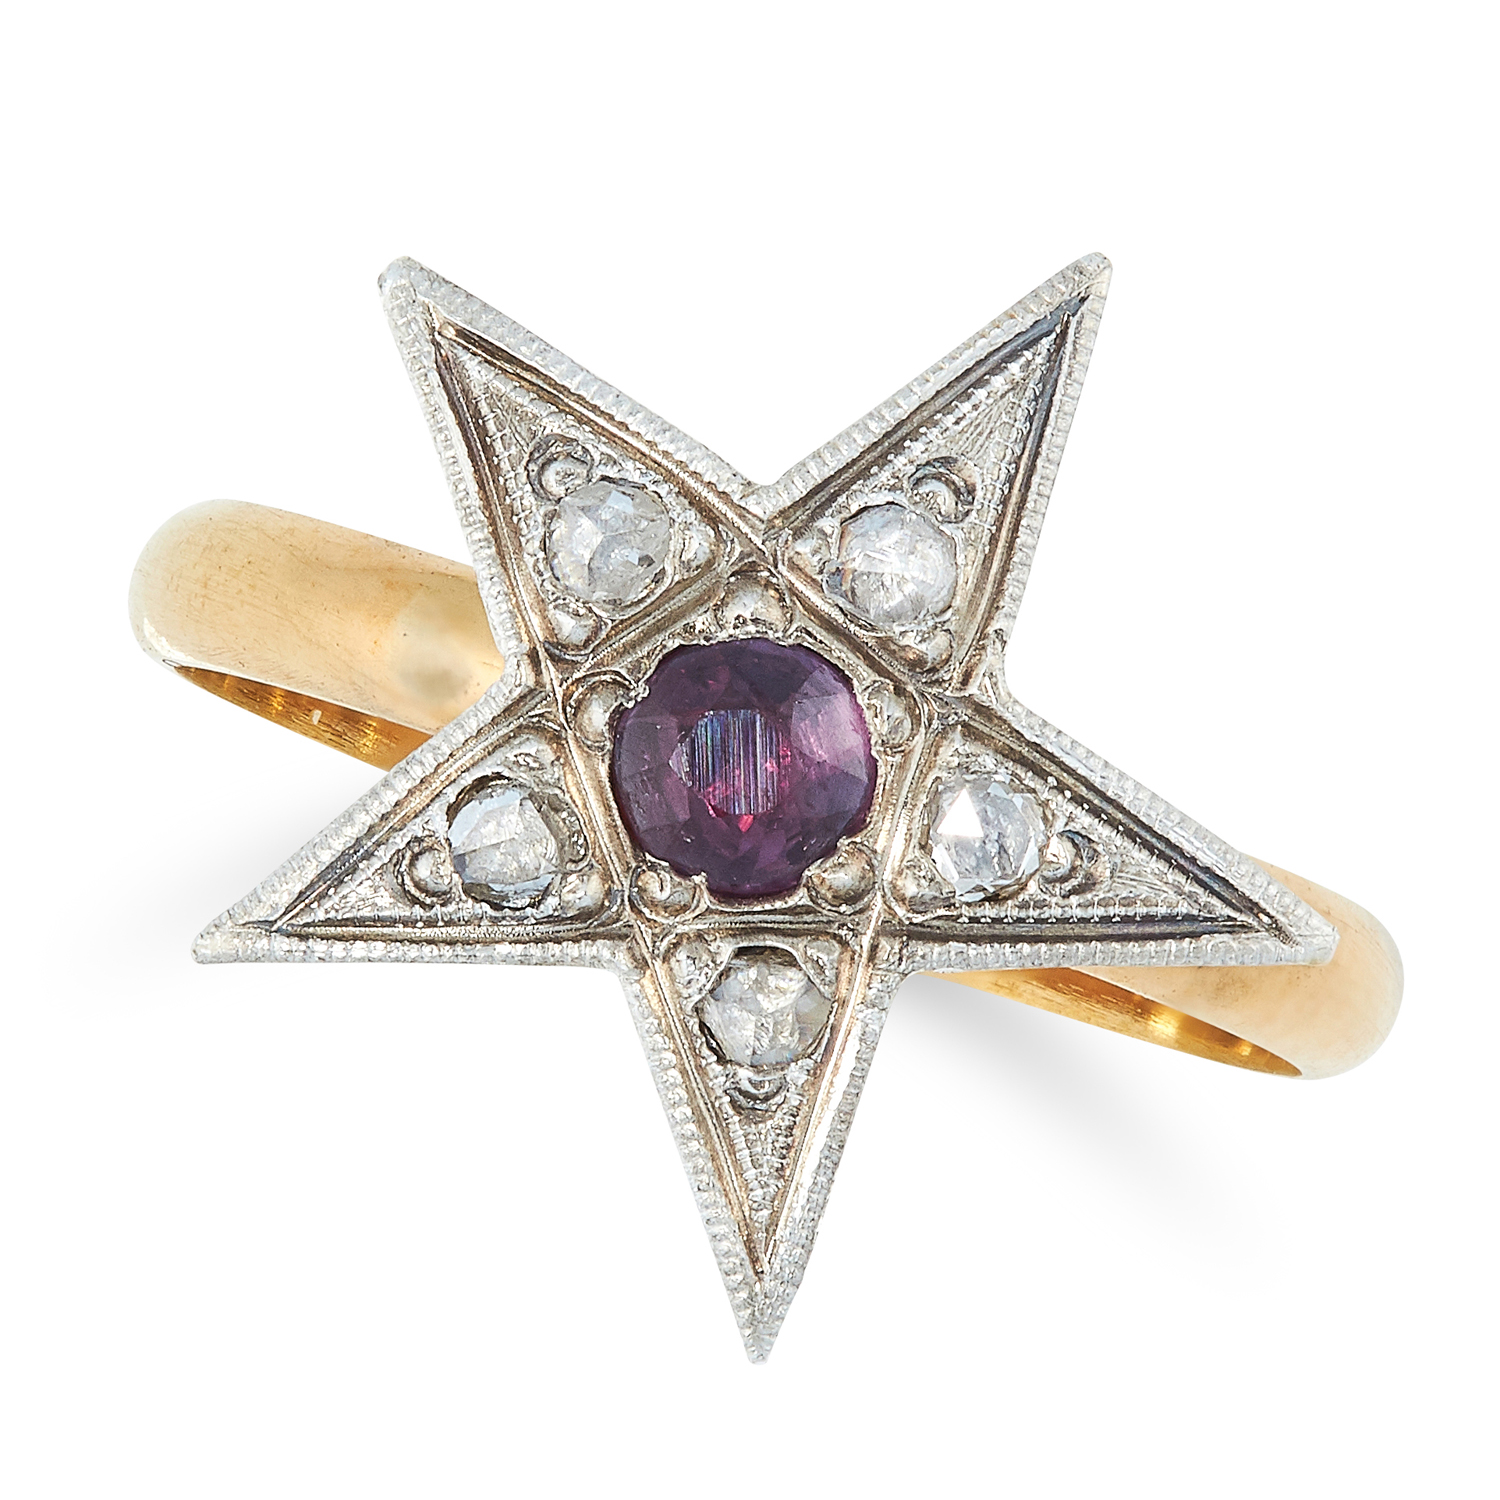 A RUBY AND DIAMOND STAR RING the star face set with a central round cut ruby and rose cut